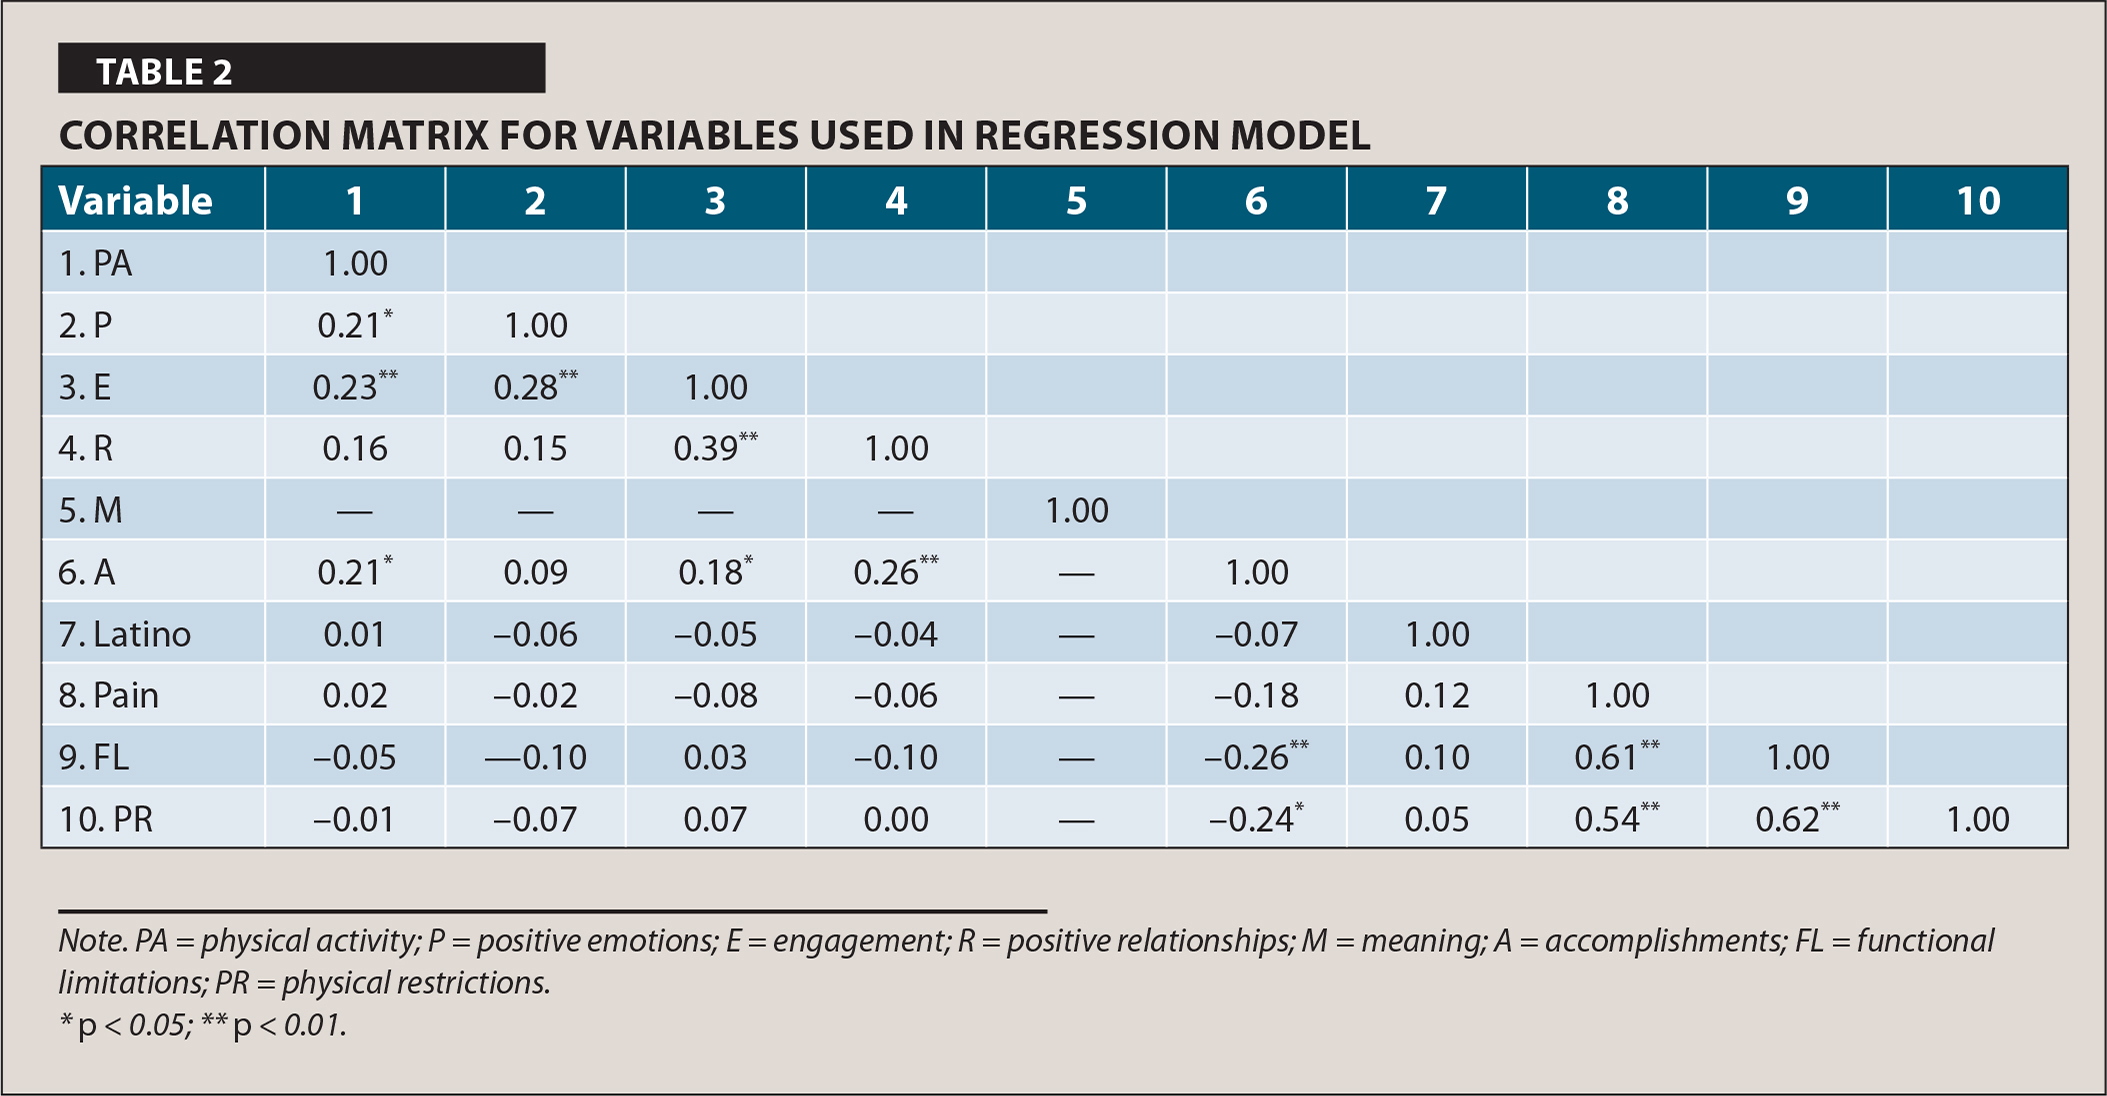 Correlation Matrix for Variables Used in Regression Model